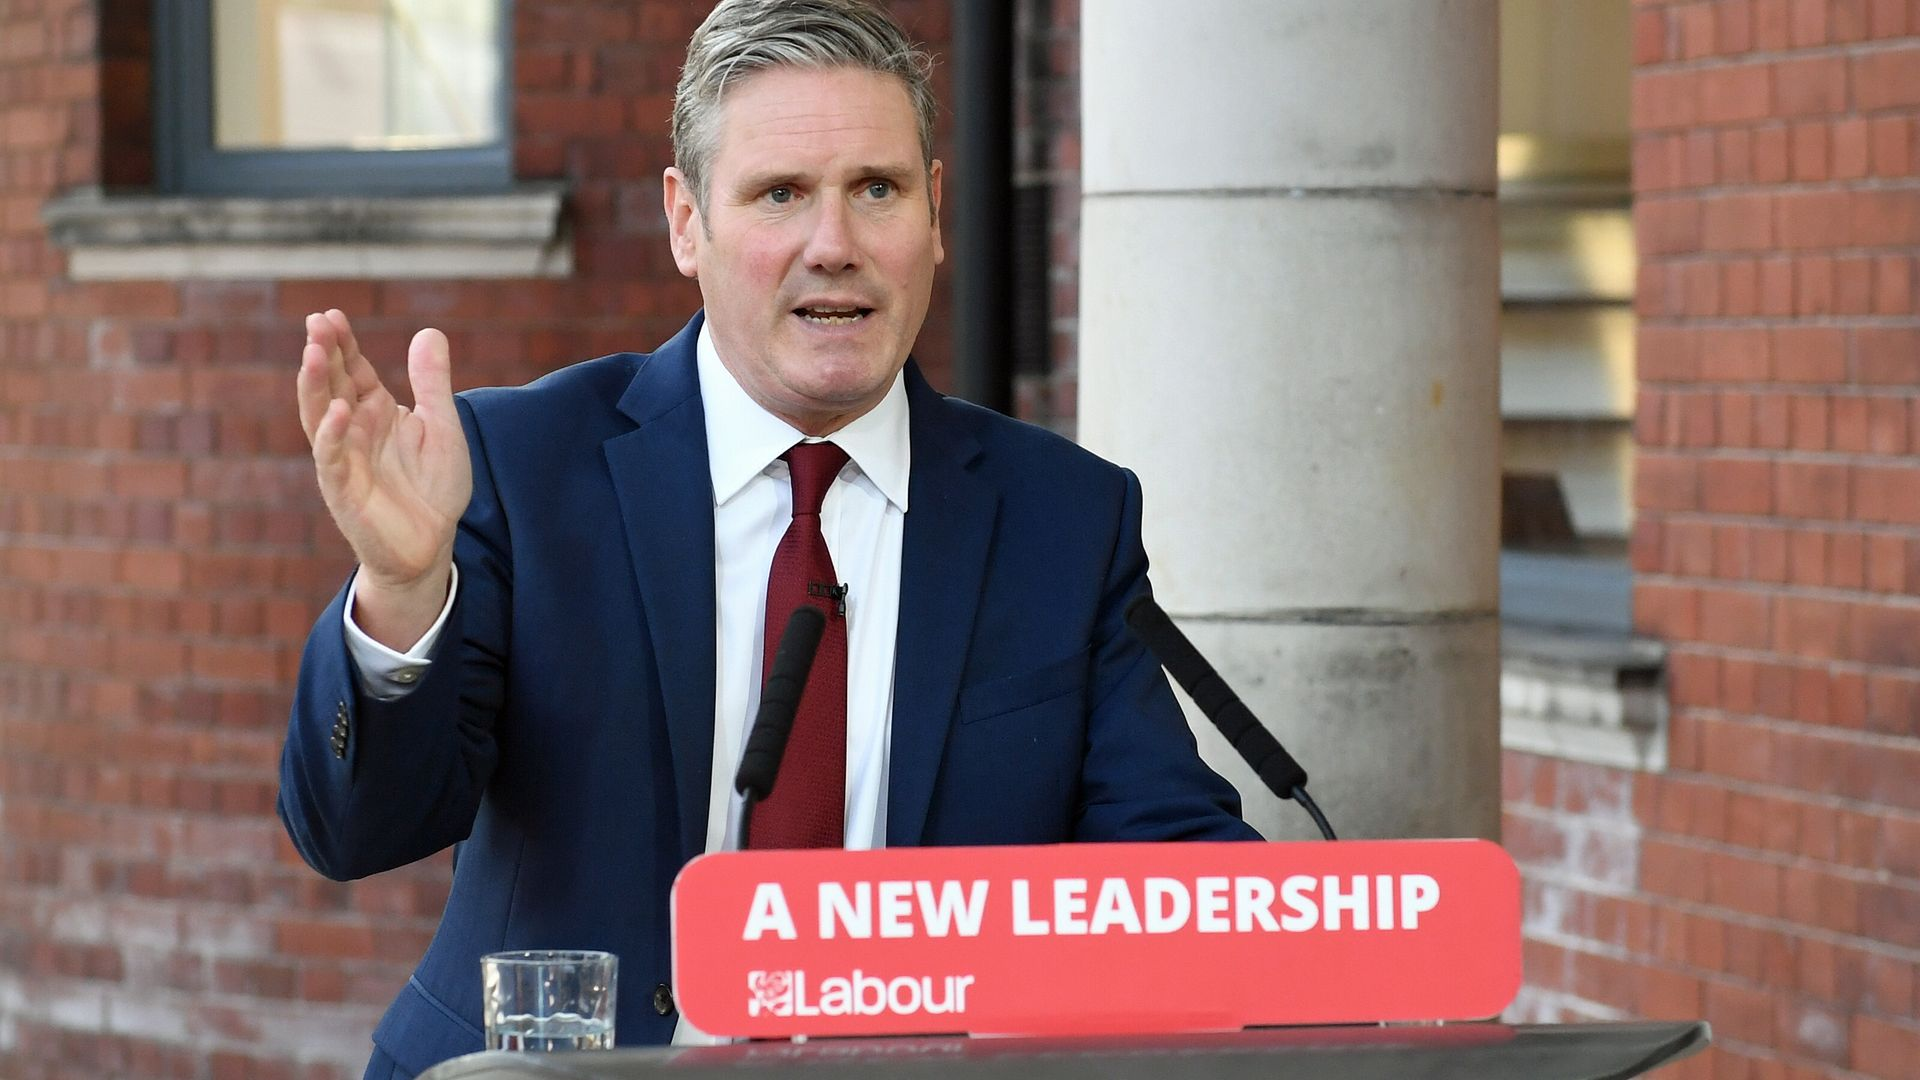 Labour leader Sir Keir Starmer delivers his keynote speech during the party's online conference from the Danum Gallery, Library and Museum in Doncaster. - Credit: PA